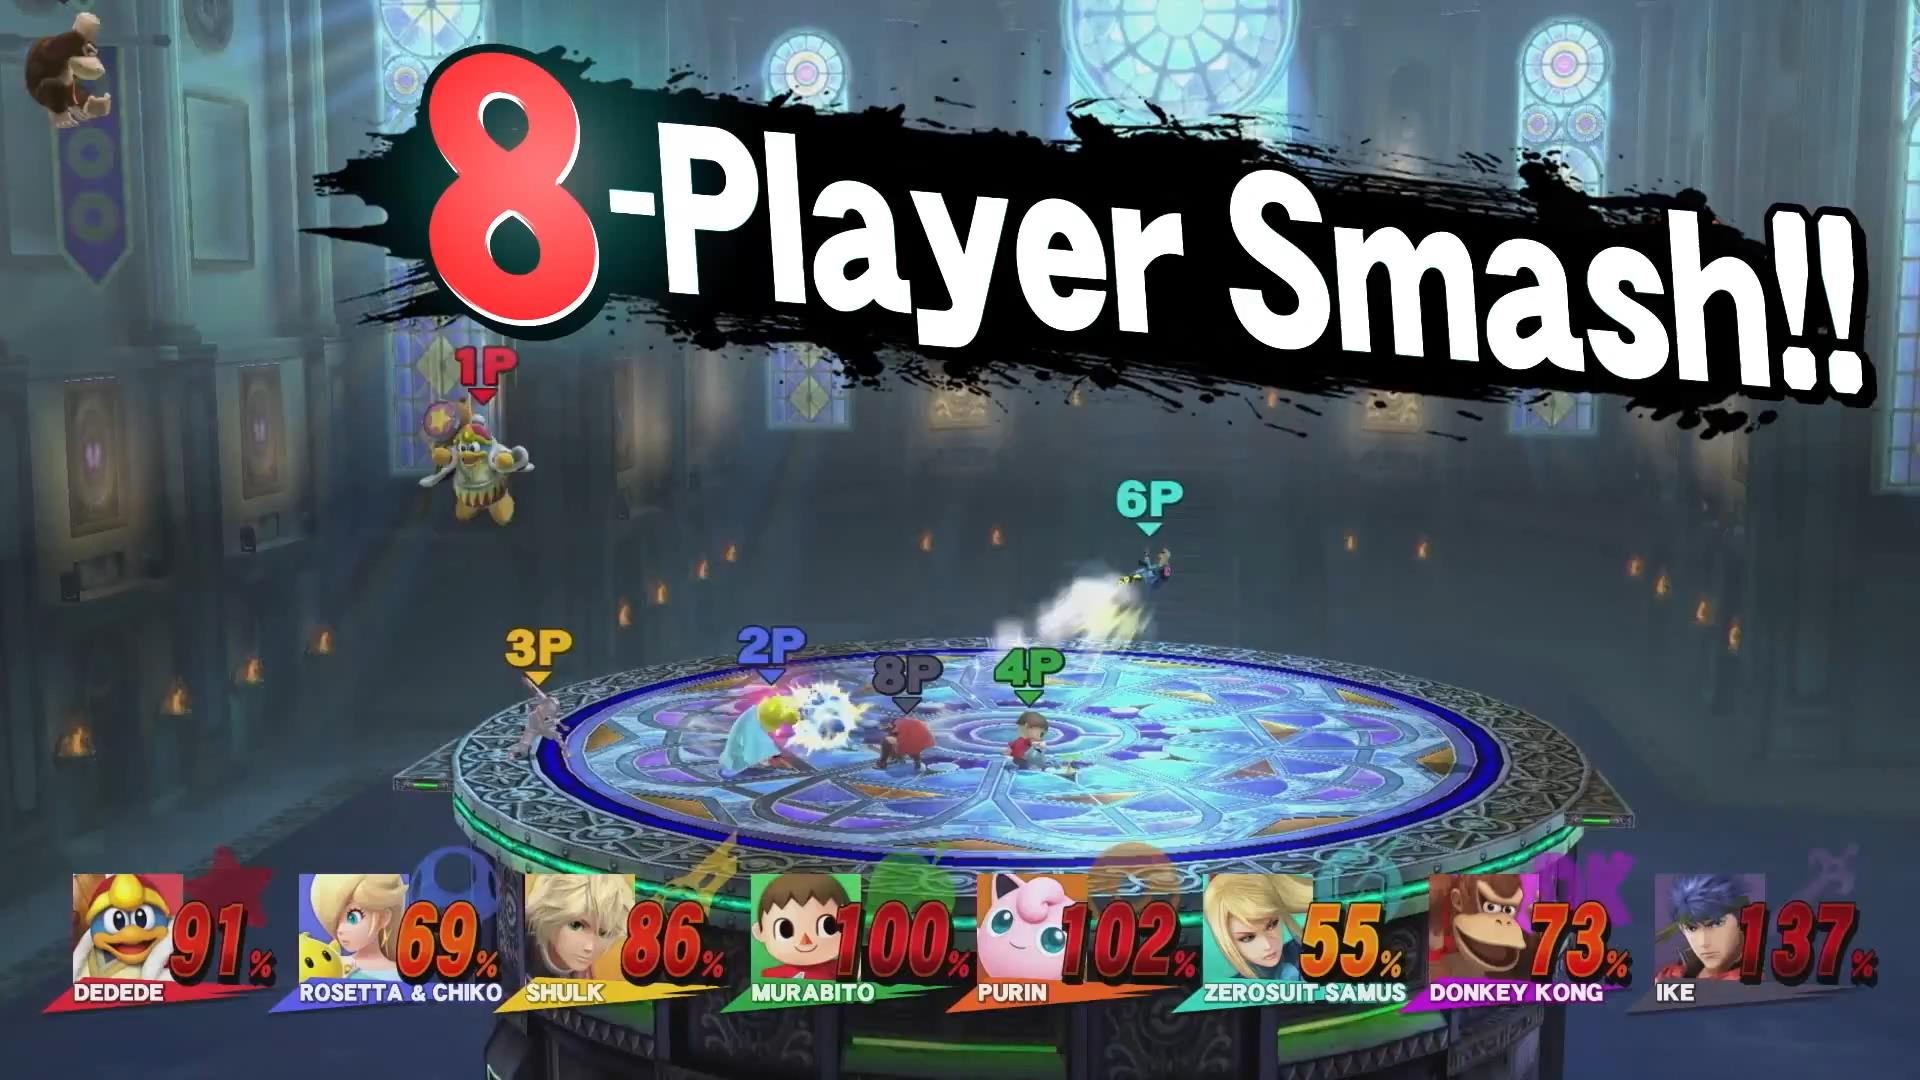 super smash bros for wii u gets 15 new stages for 8 player mode